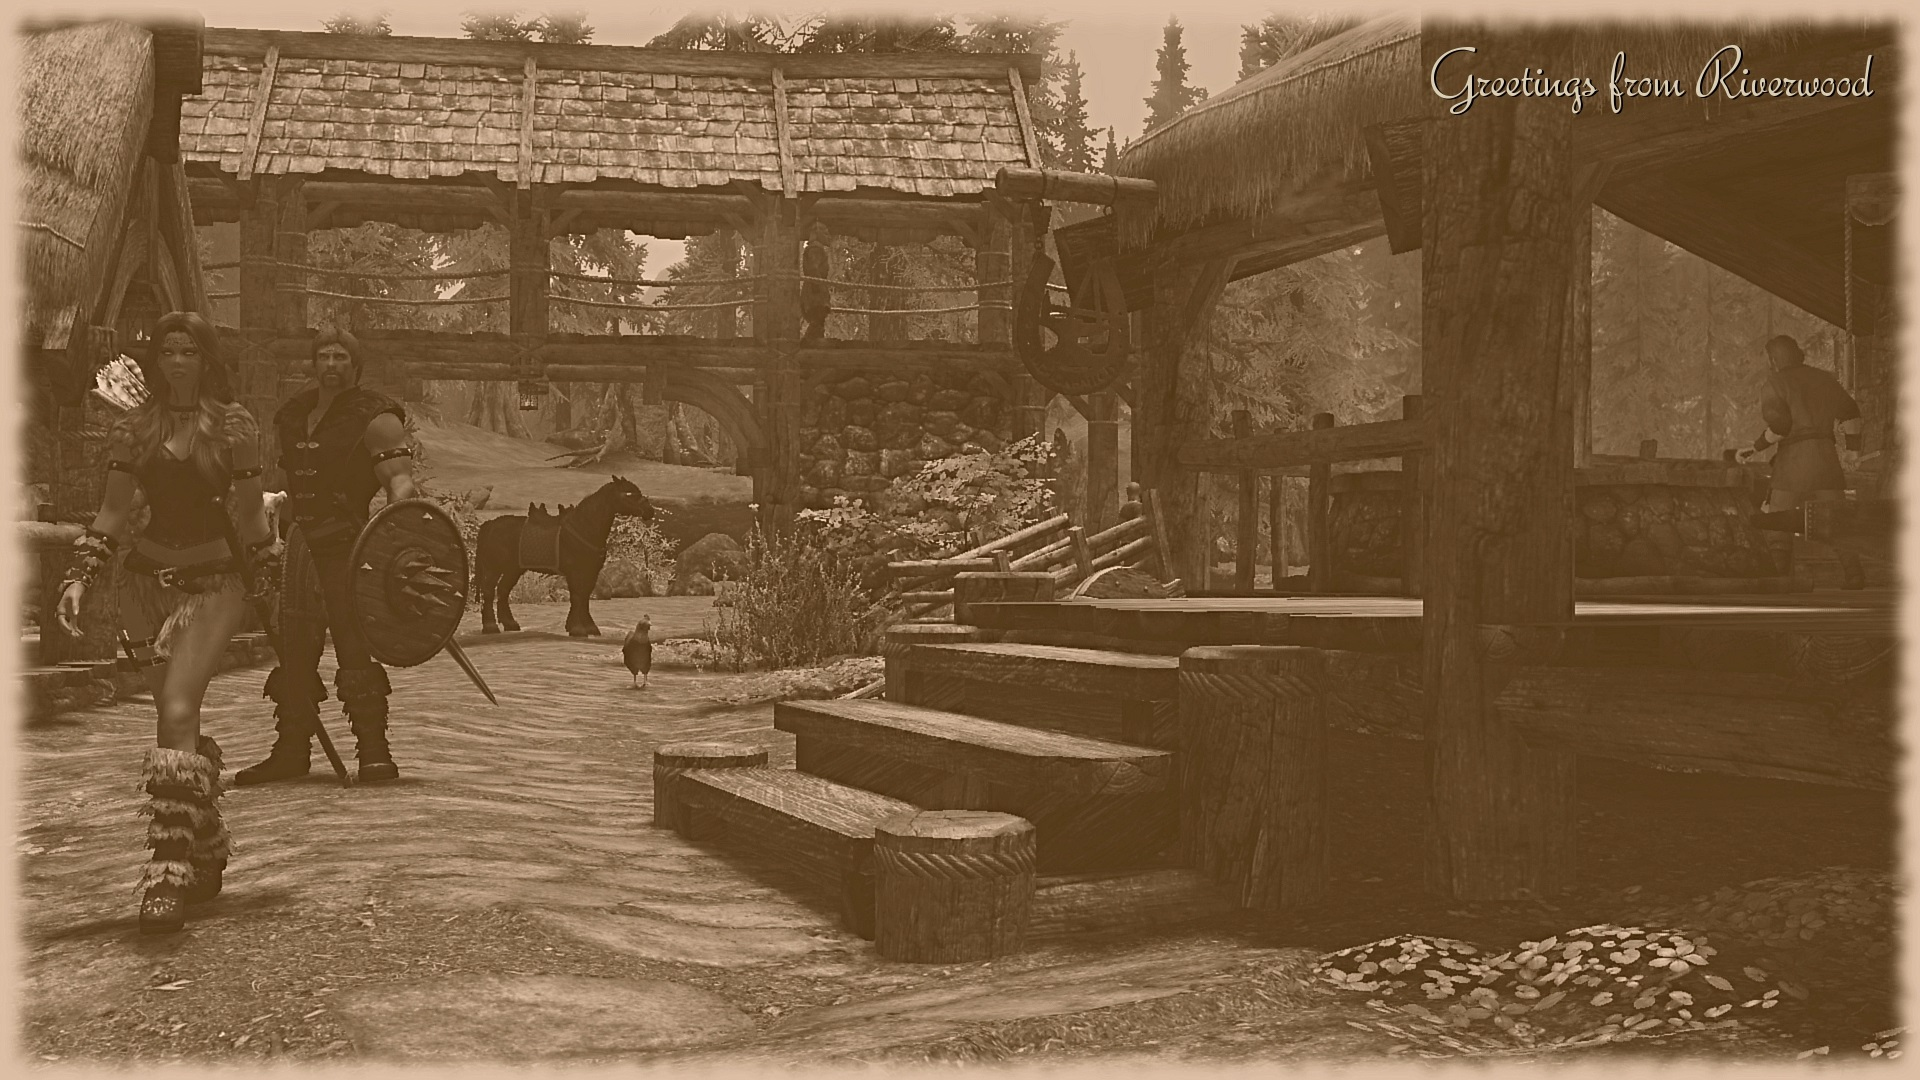 Riverwood postcard